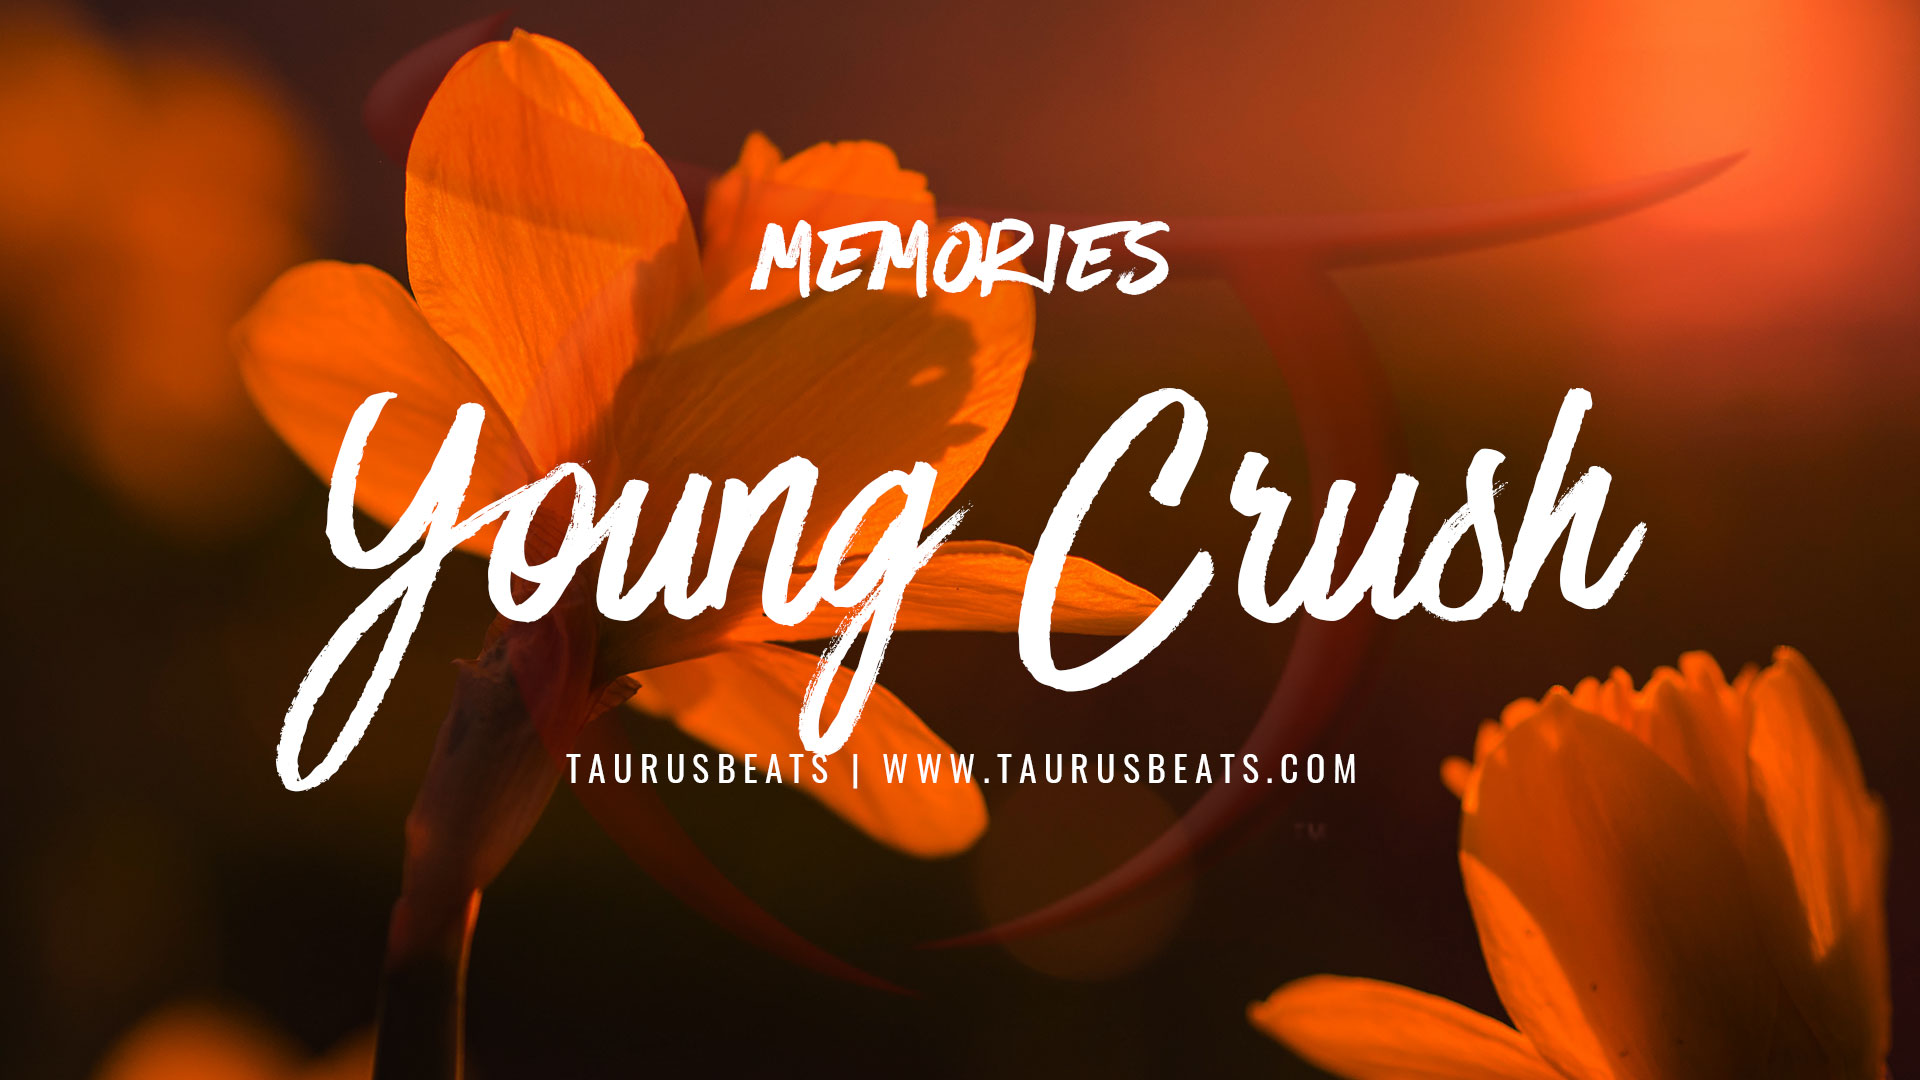 image for Young Crush